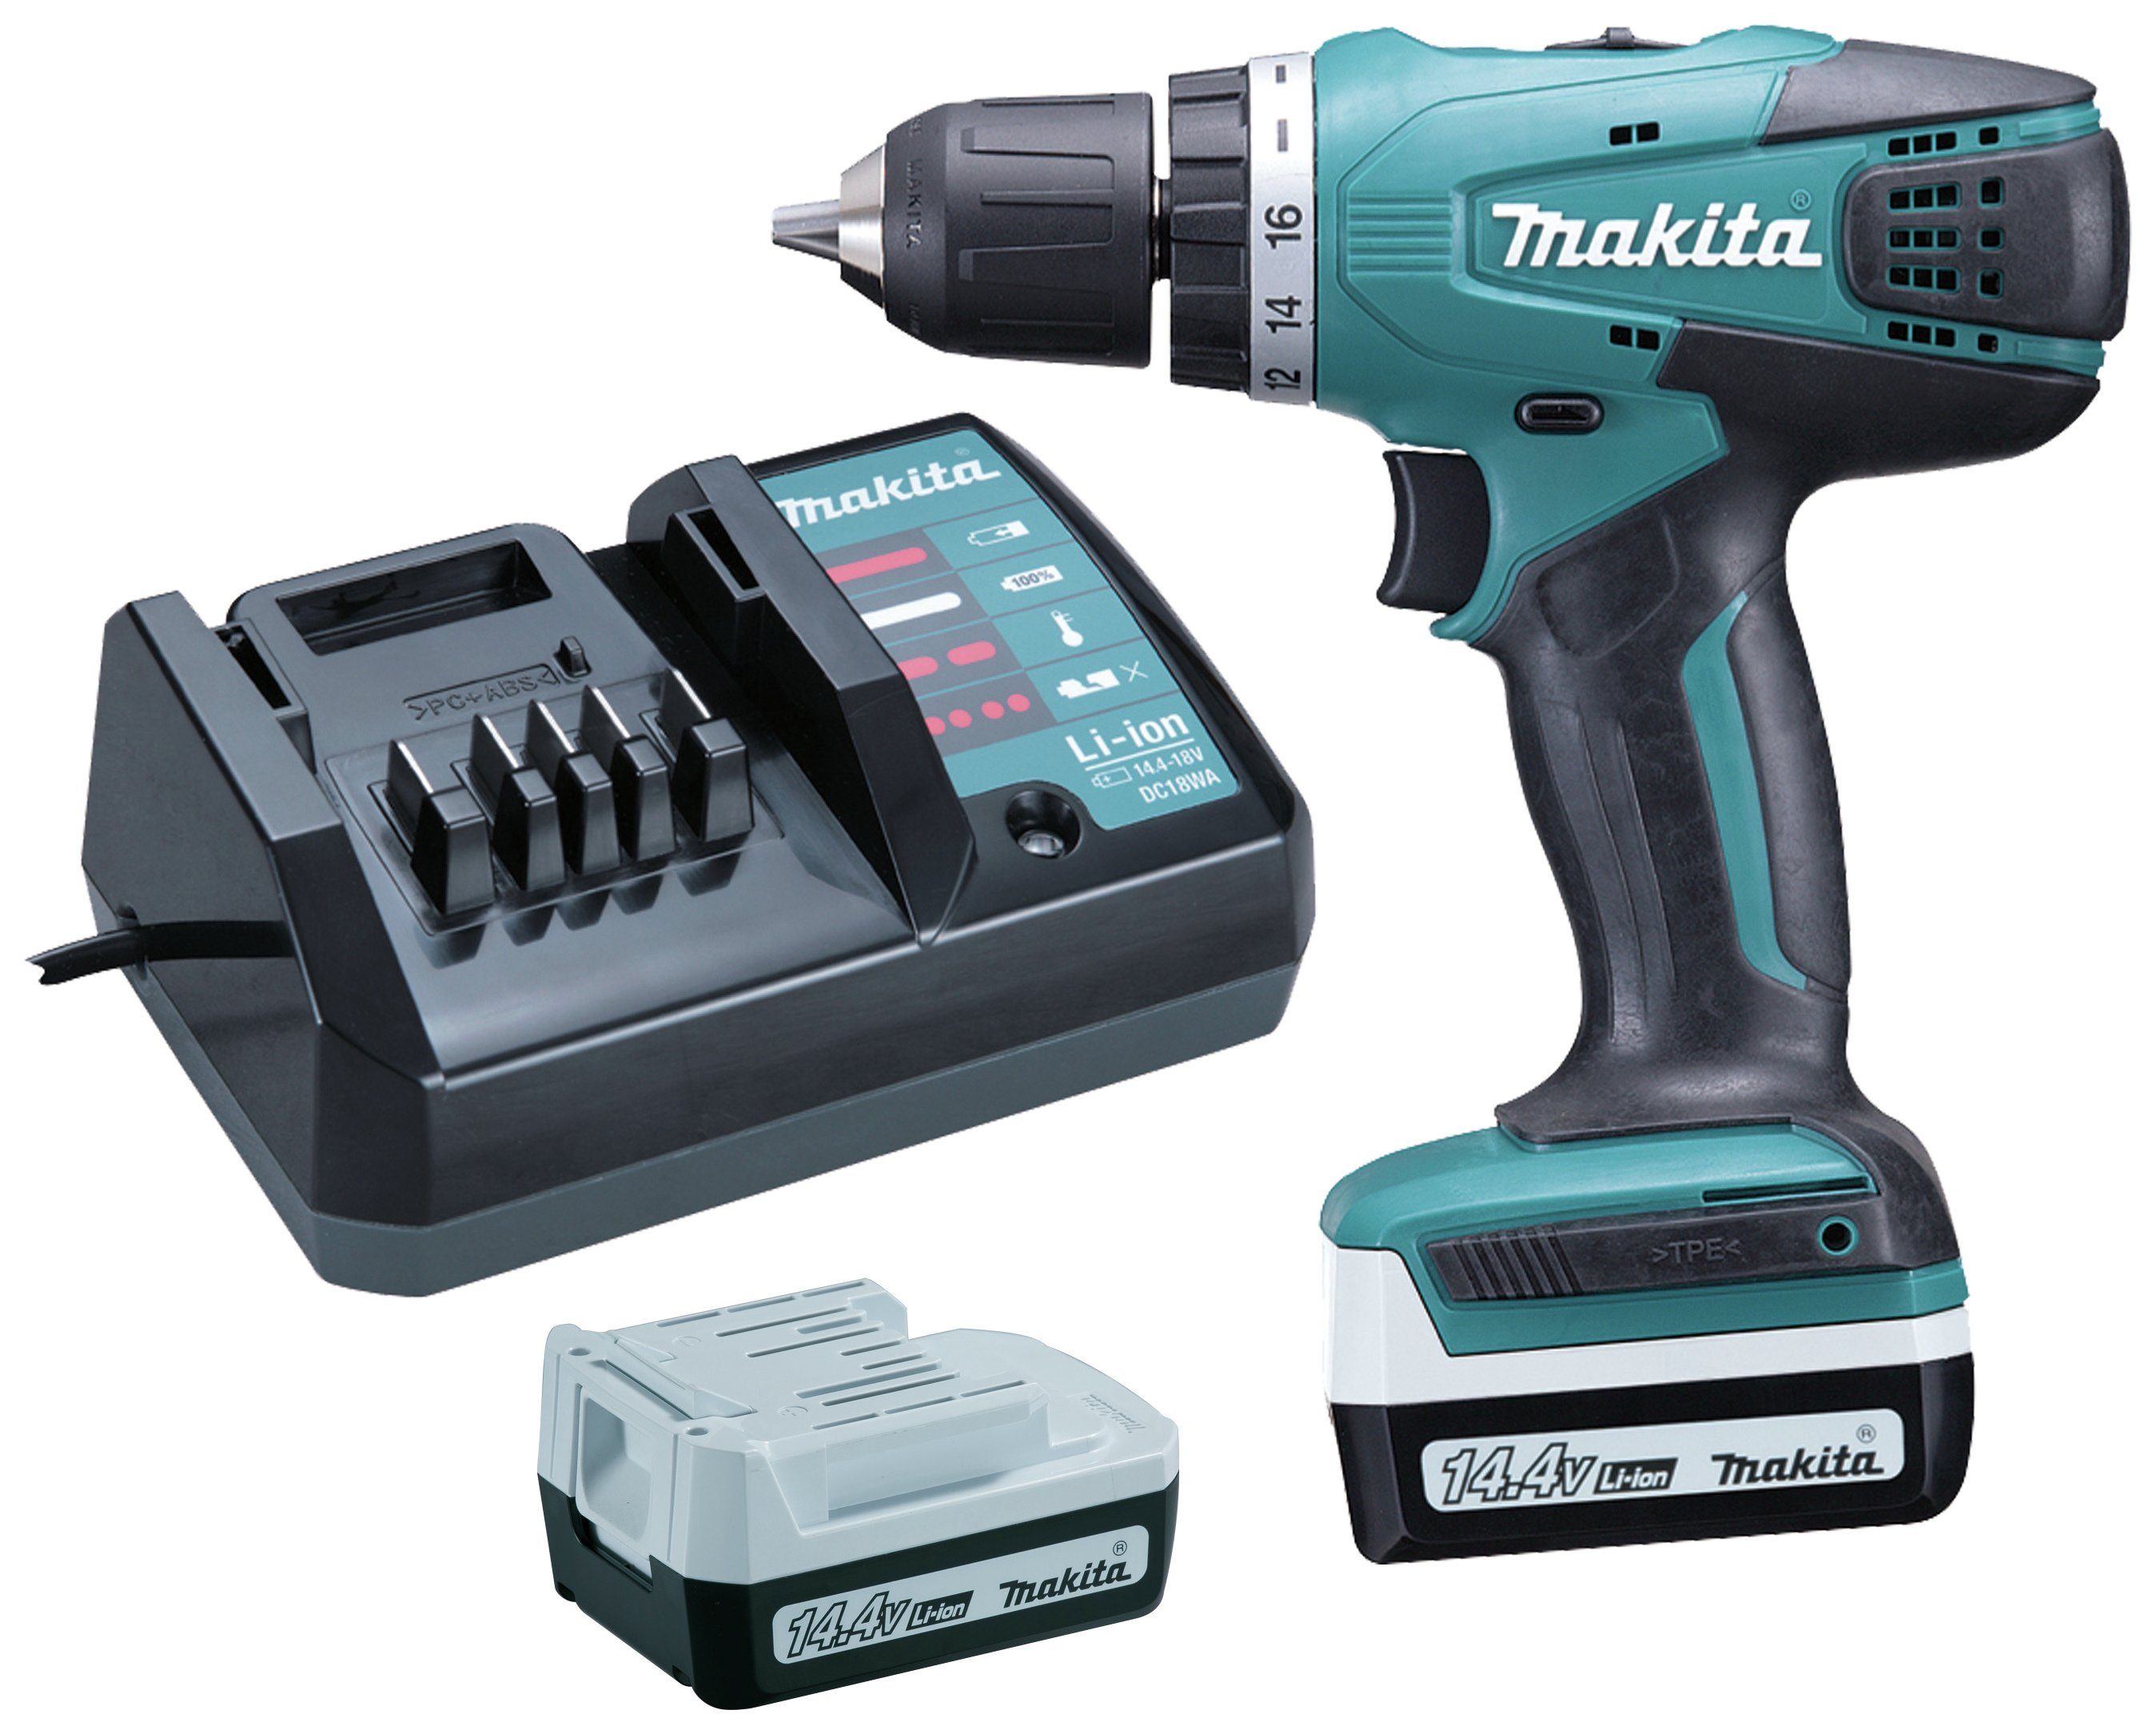 Makita - 144v Li-on Drill Driver with 2 Batteries lowest price